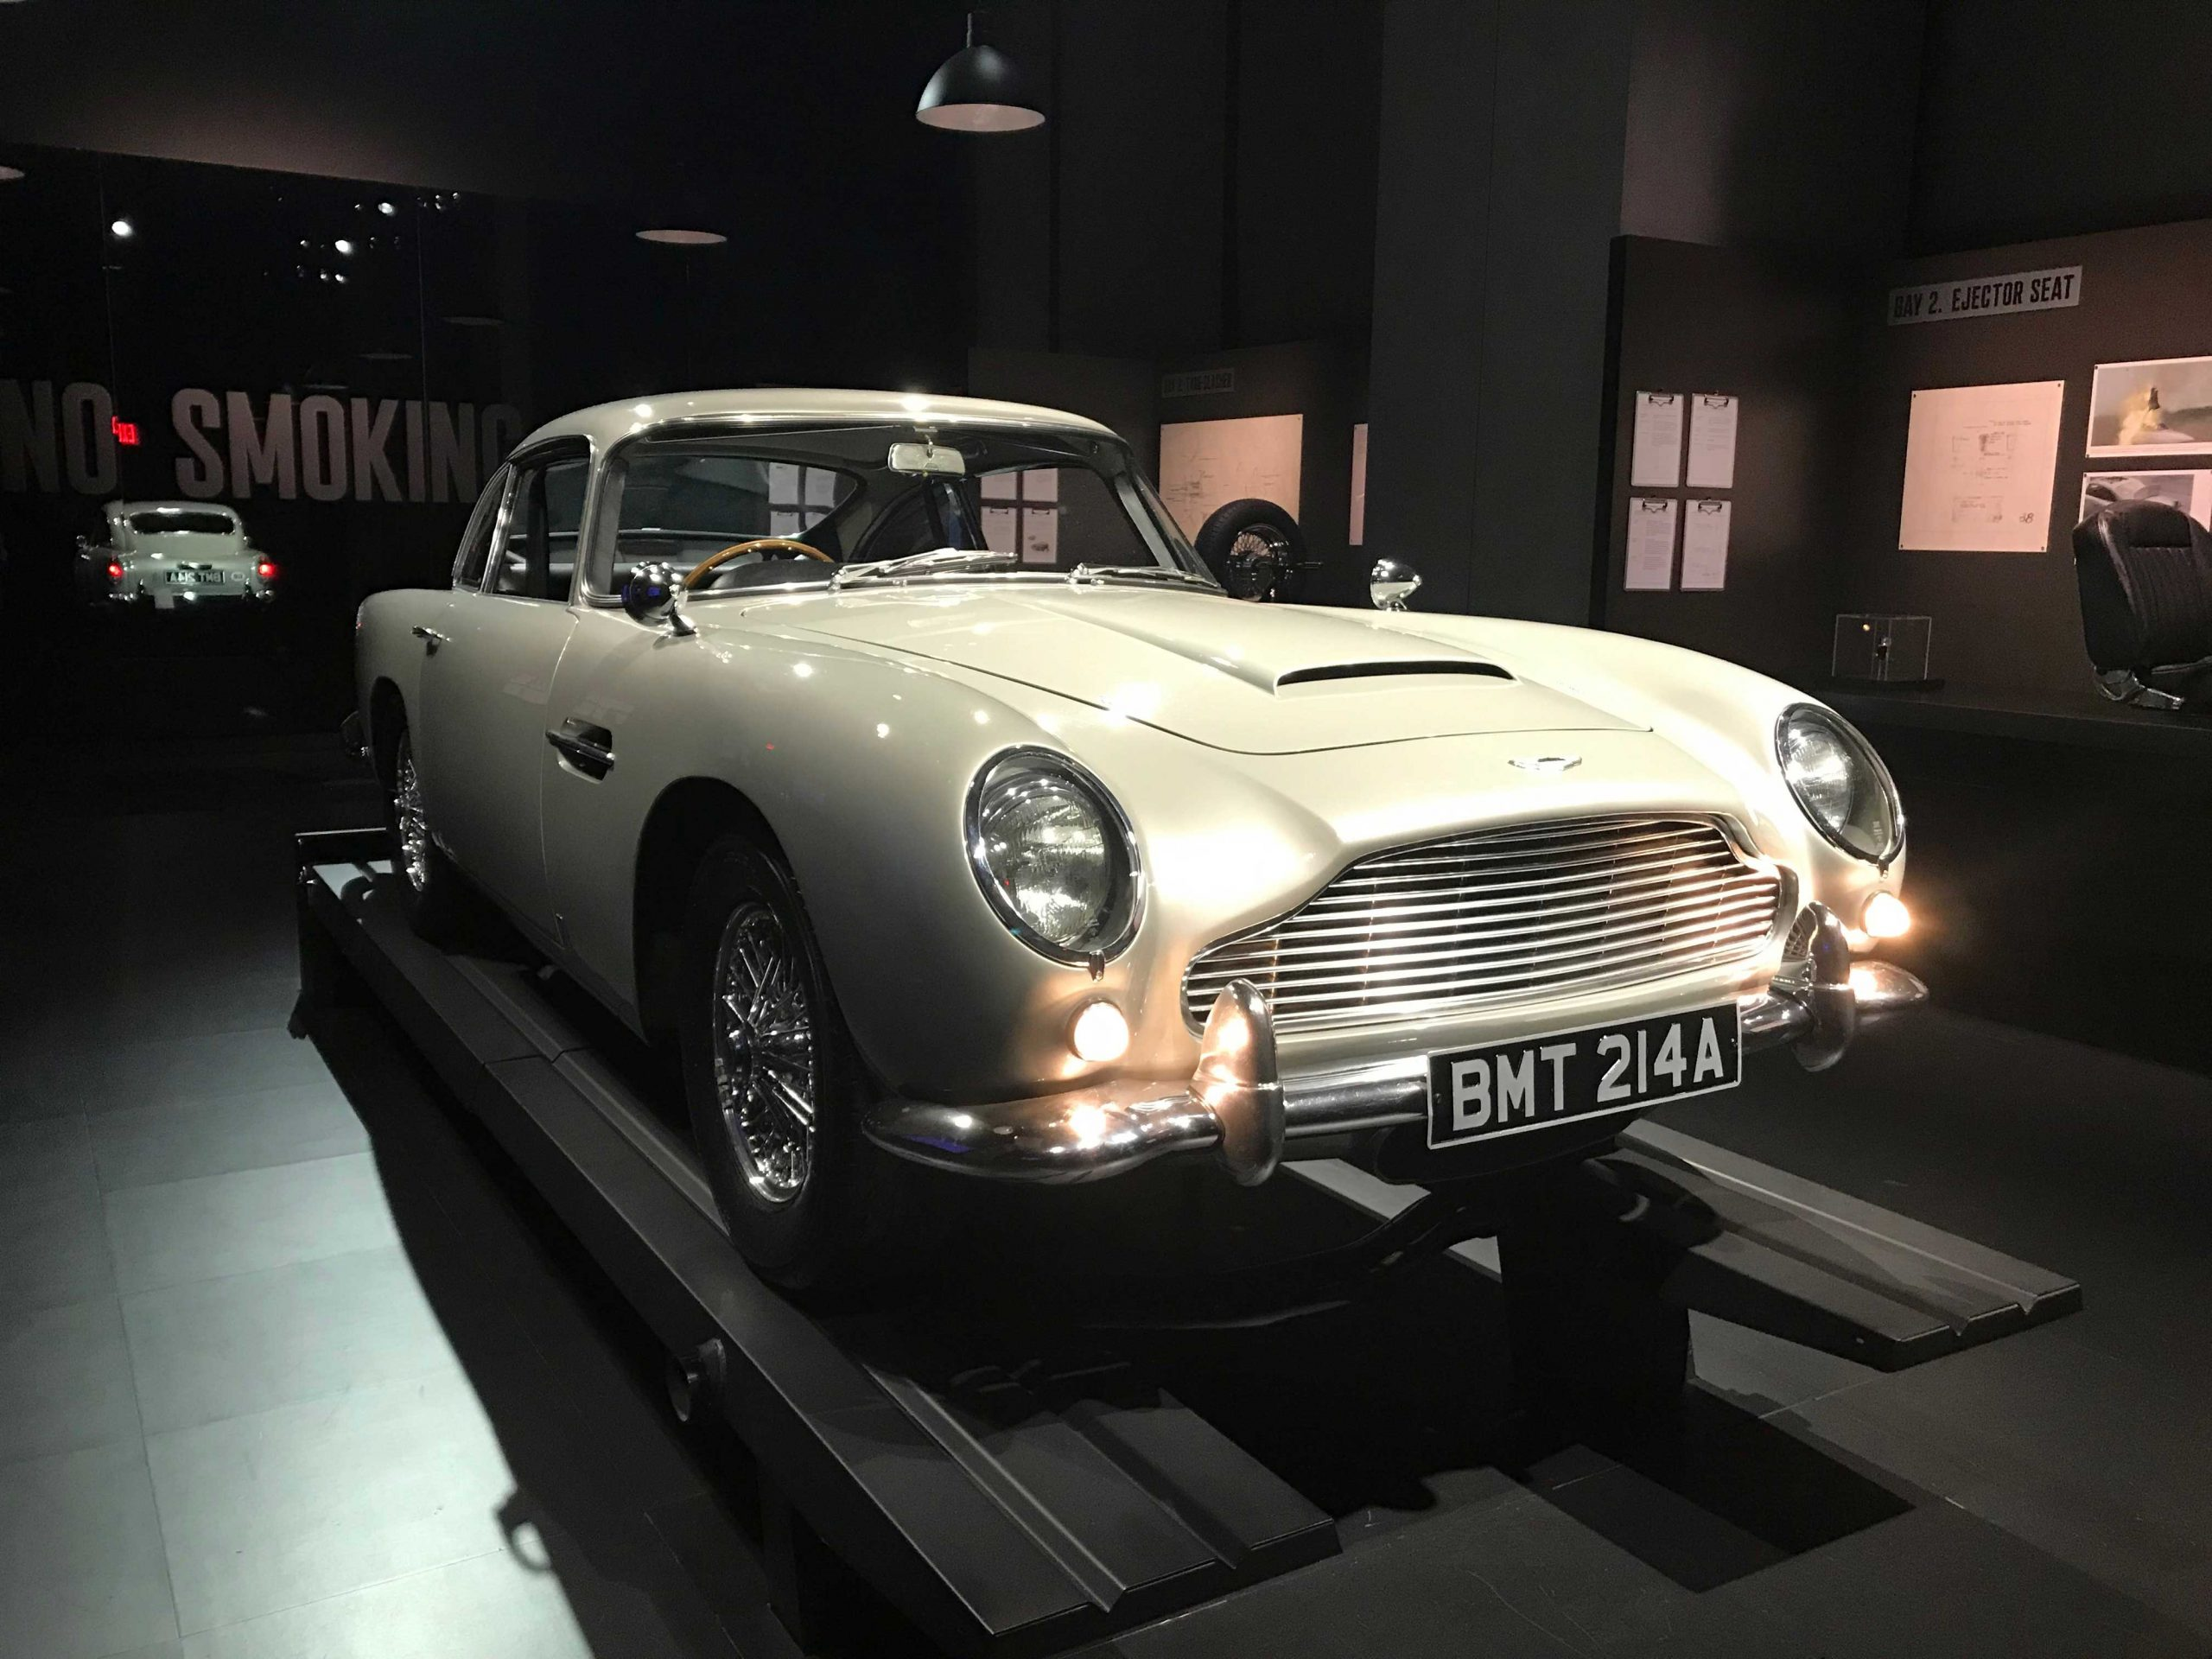 aston martin db5 inside spyscape